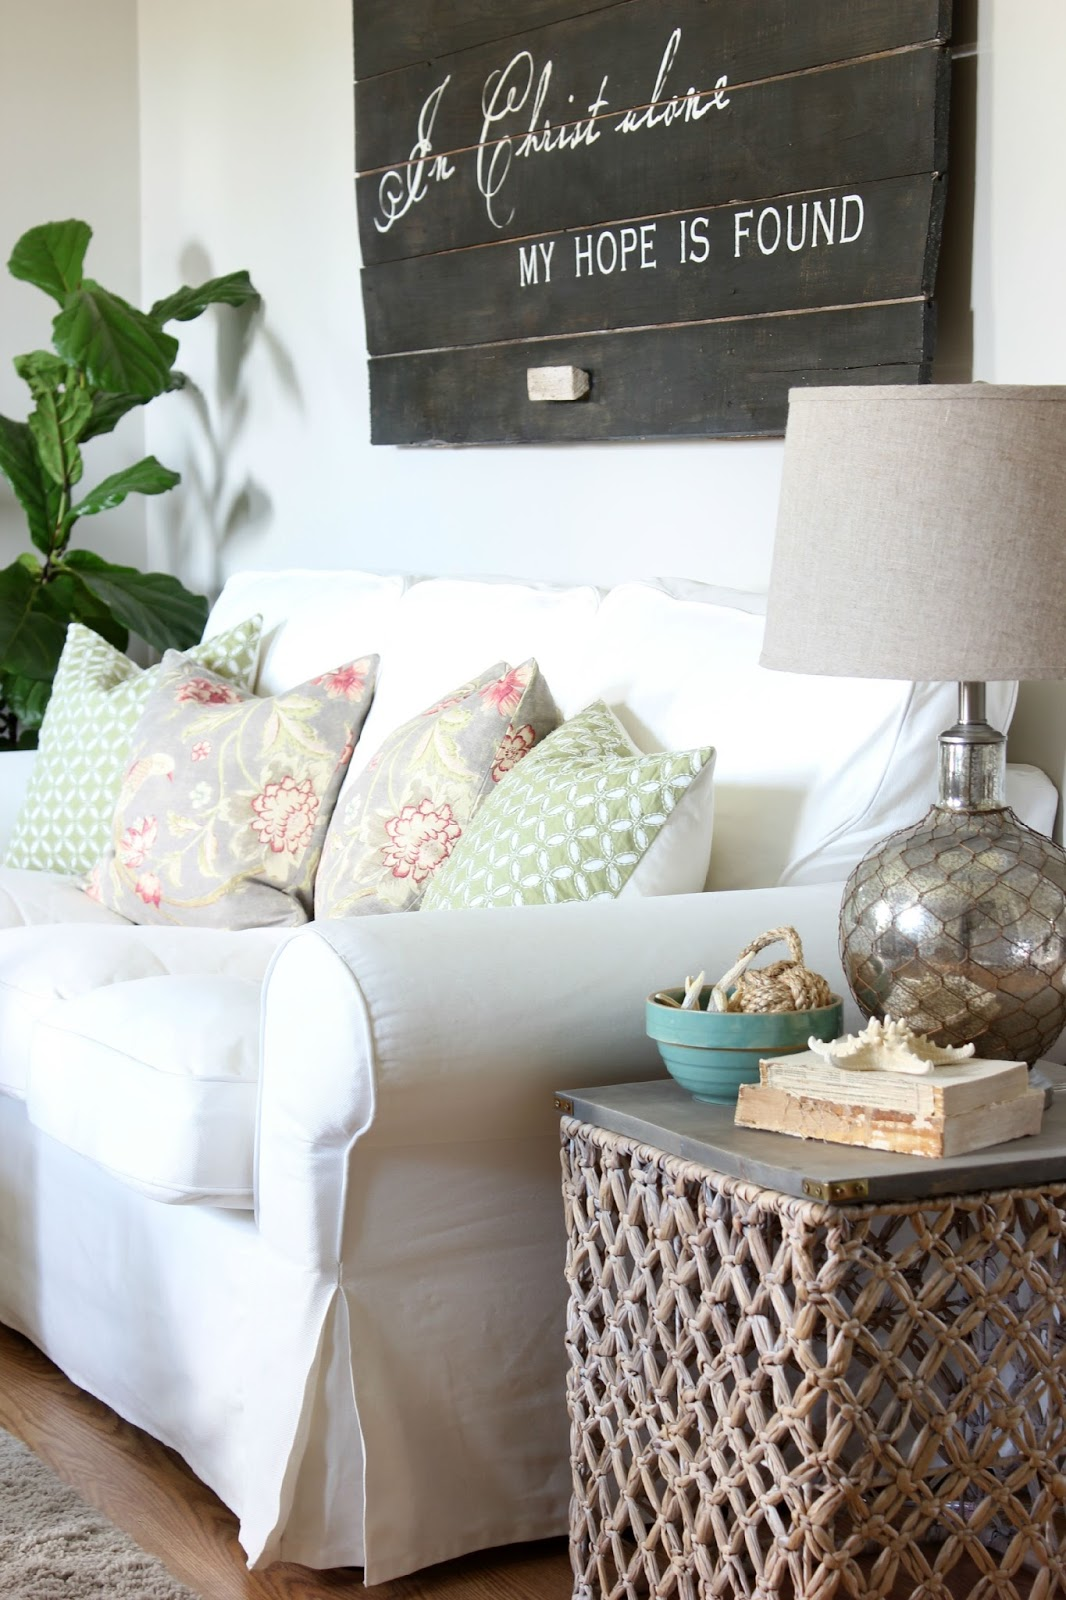 target summer basket becomes chic side table hymns and verses made end wicker accent did show some restraint but this few other things come home with knew could make great